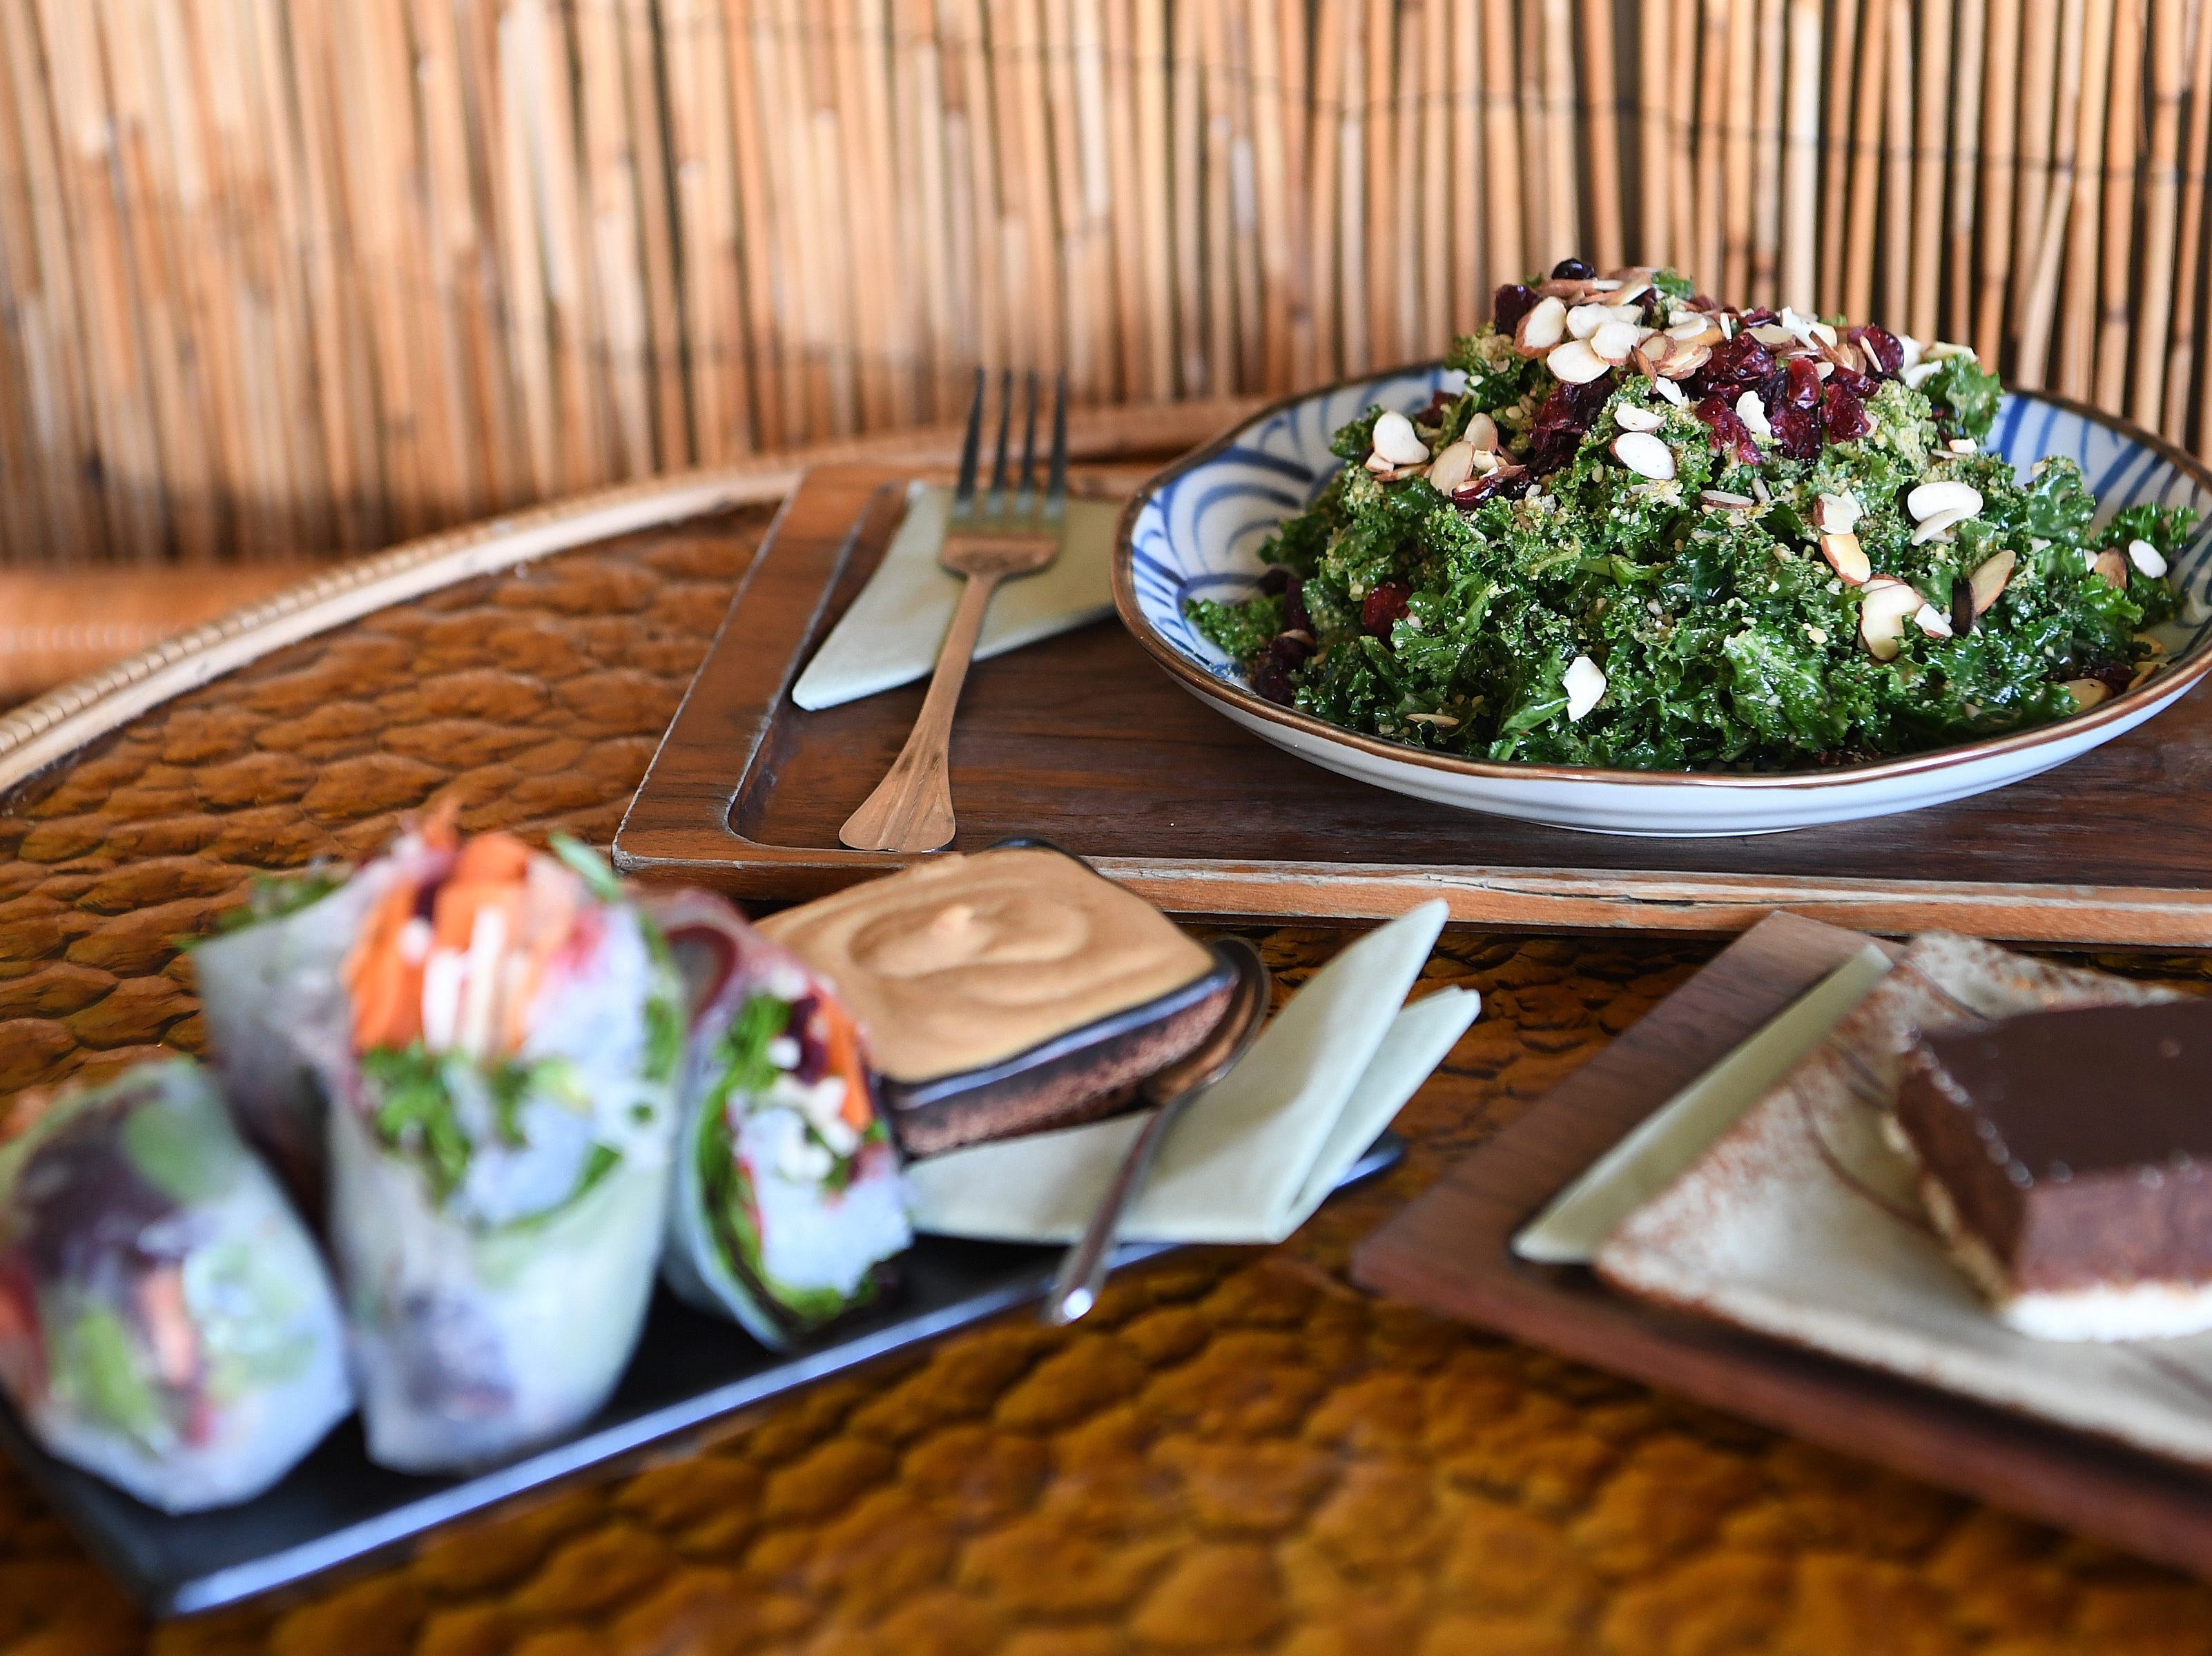 The kale caesar salad at Dobra Tea's West Asheville location is tossed in dairy-free caesar dressing and topped with dried cranberries, sliced almonds and vegan seed parmesan. Shown here with spring rolls and an almond joyful bar.